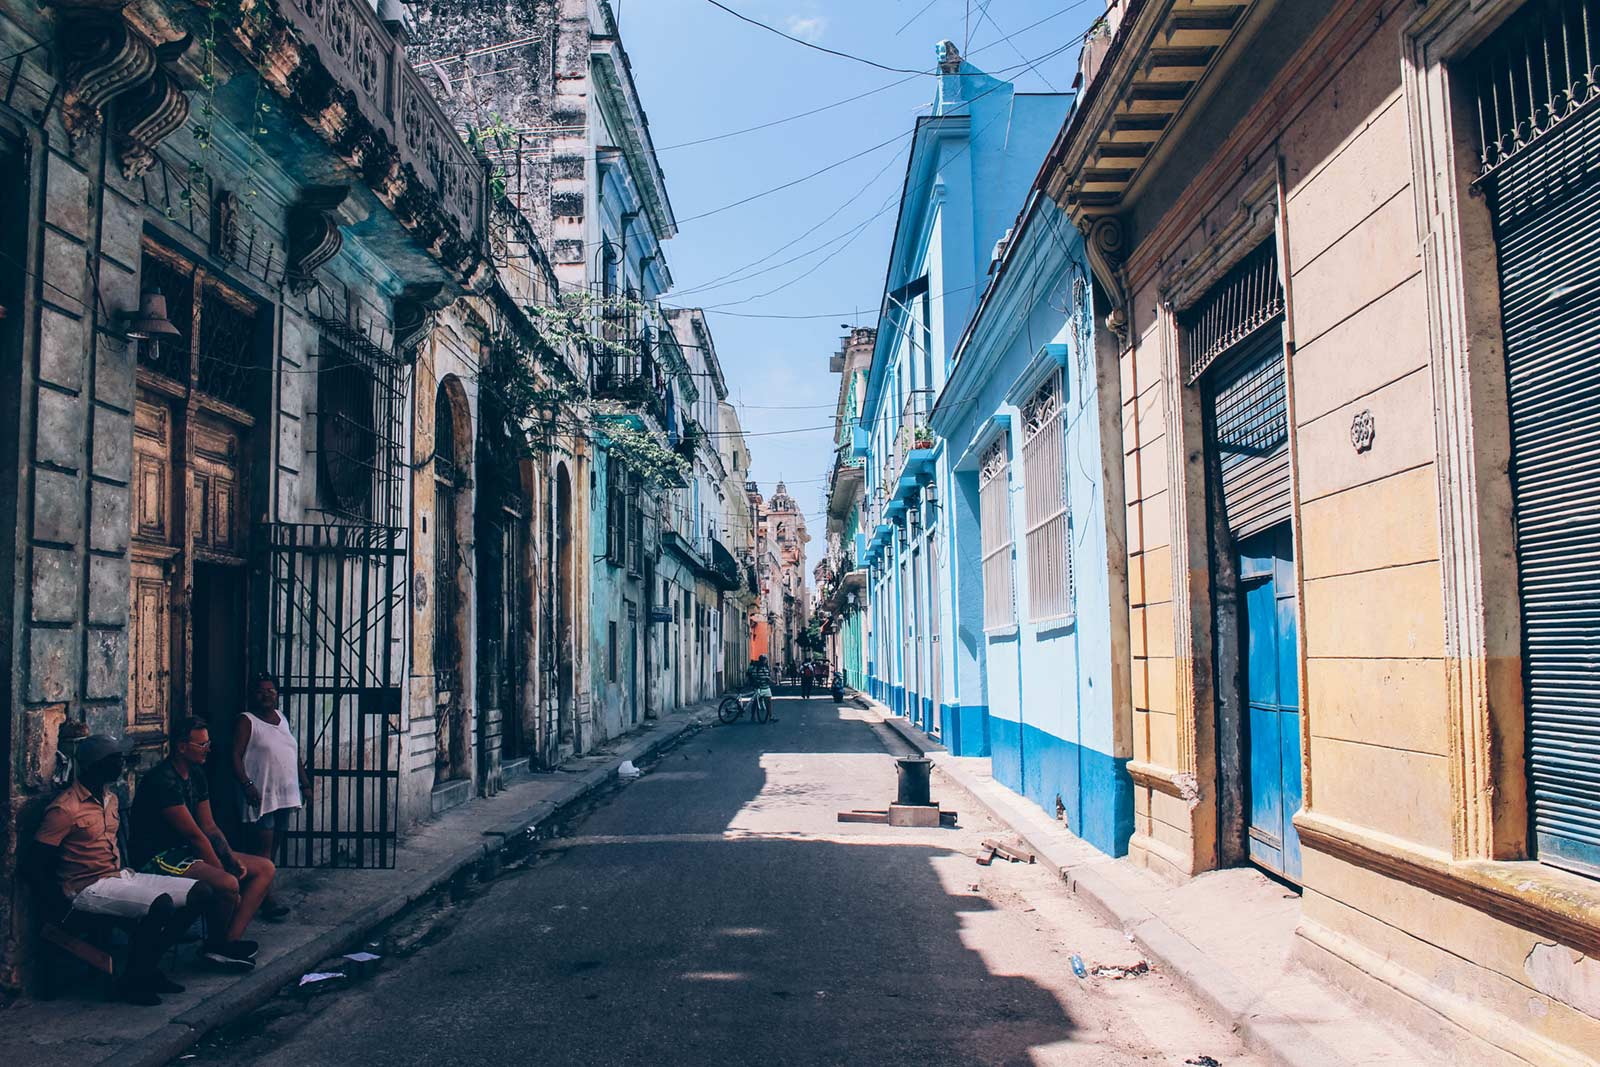 Havana, Cuba. Photo by Augustin de Montesquiou on Unsplash